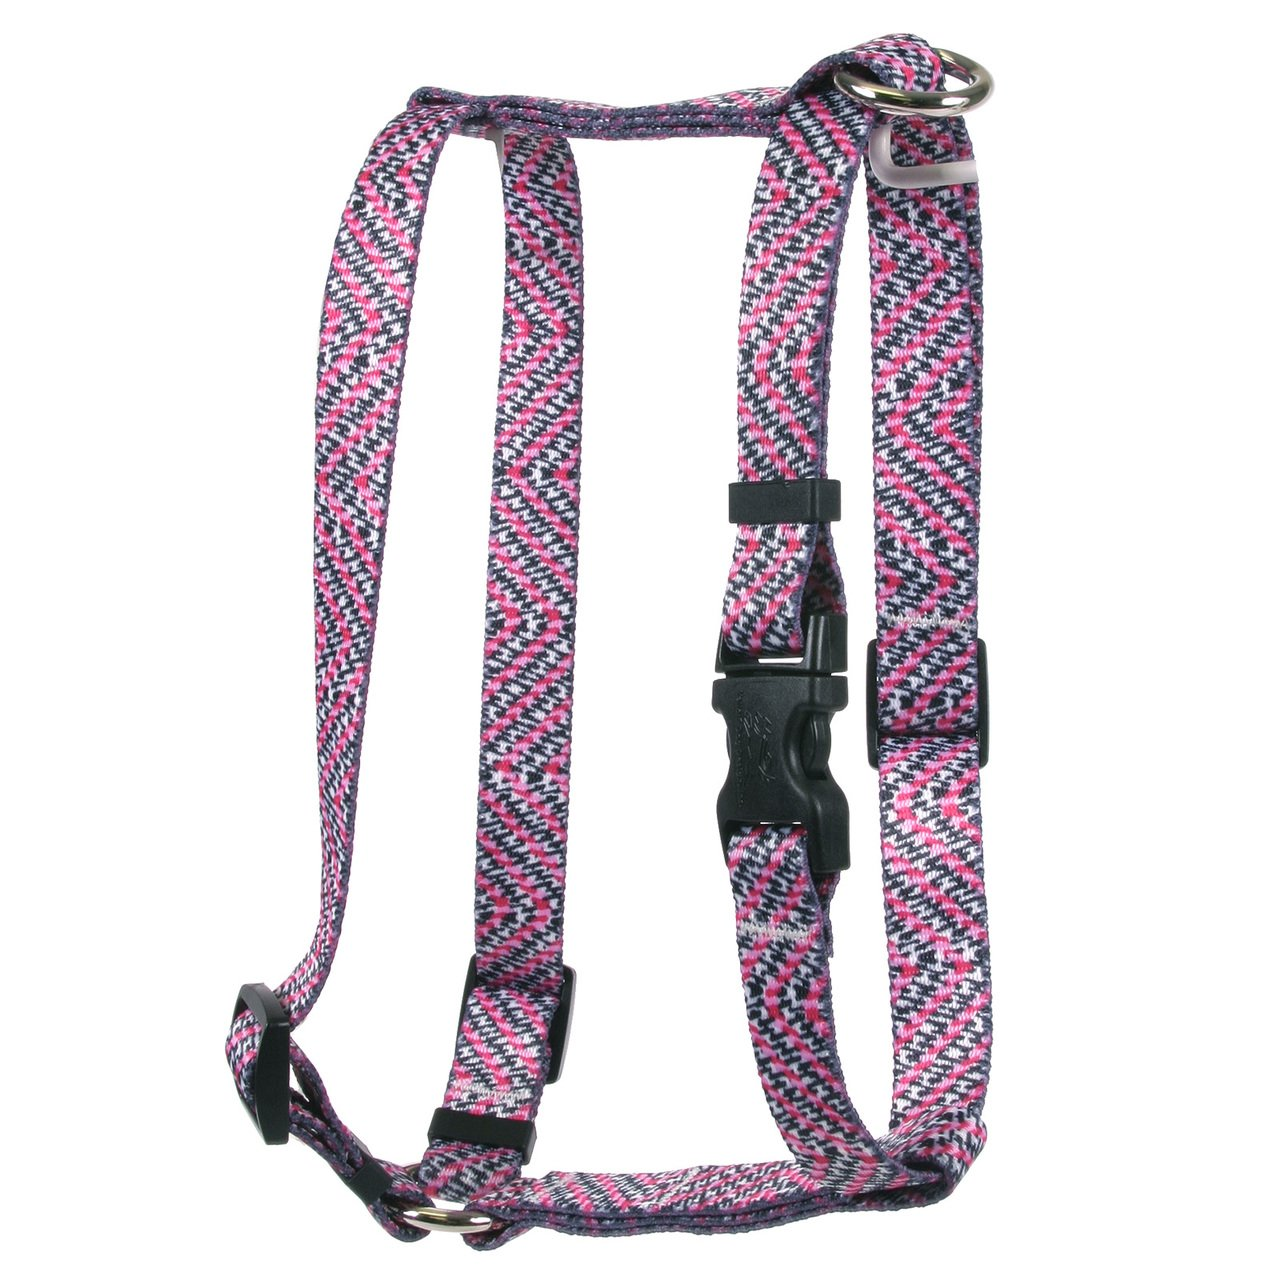 Yellow Dog Design Pink Tweed Roman Style H Dog Harness, X-Large-1'' Wide and fits Chest of 28 to 36''